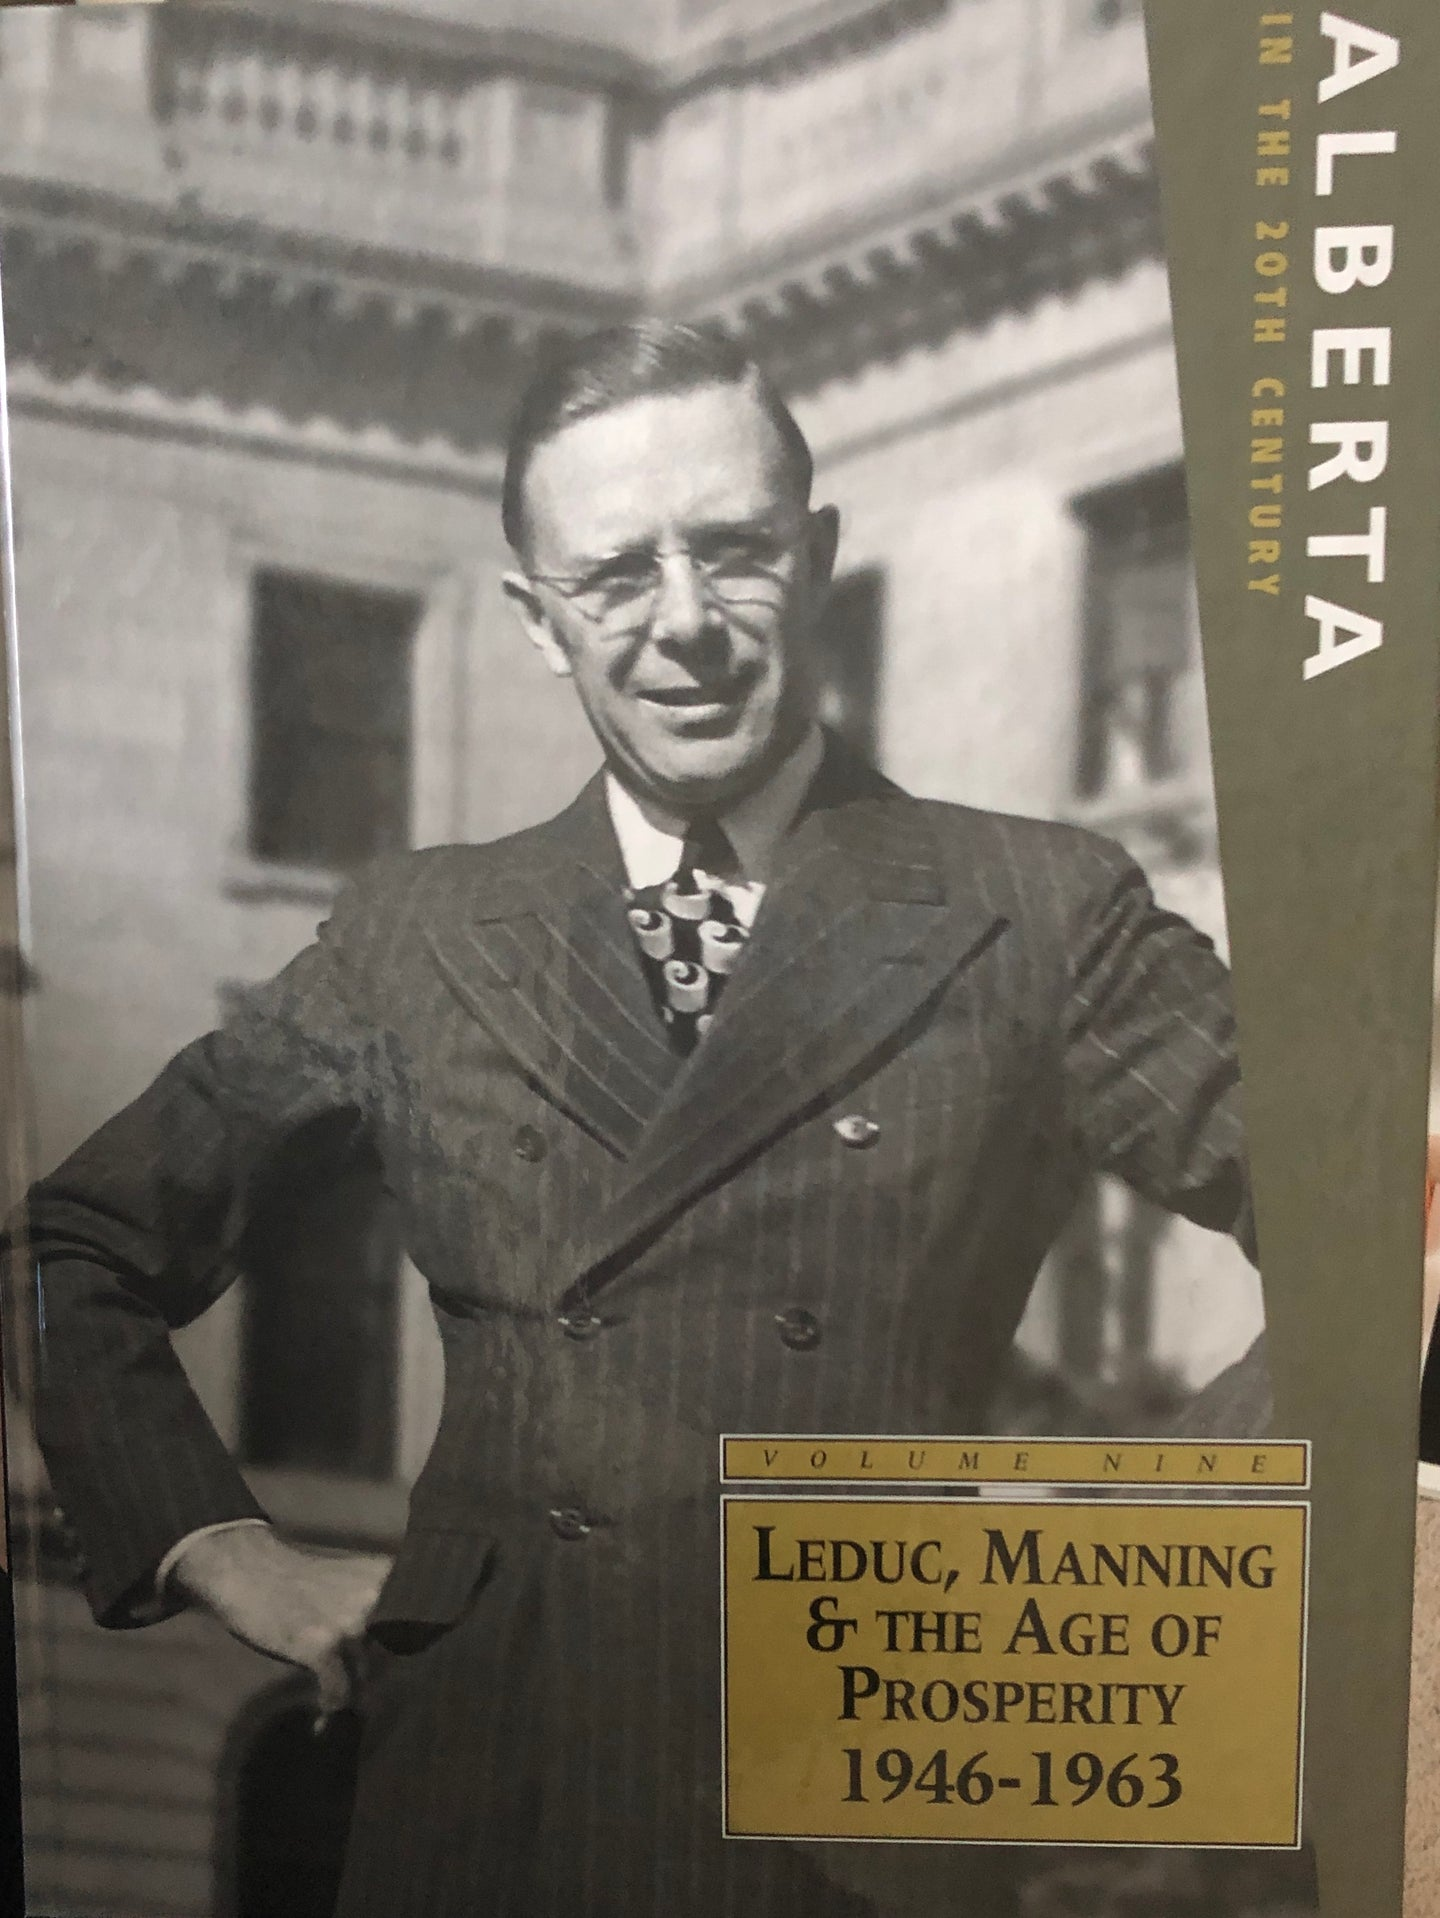 Alberta in the 20th Century (Vol.9): Leduc, Manning & the Age of Prosperity 1946-1963